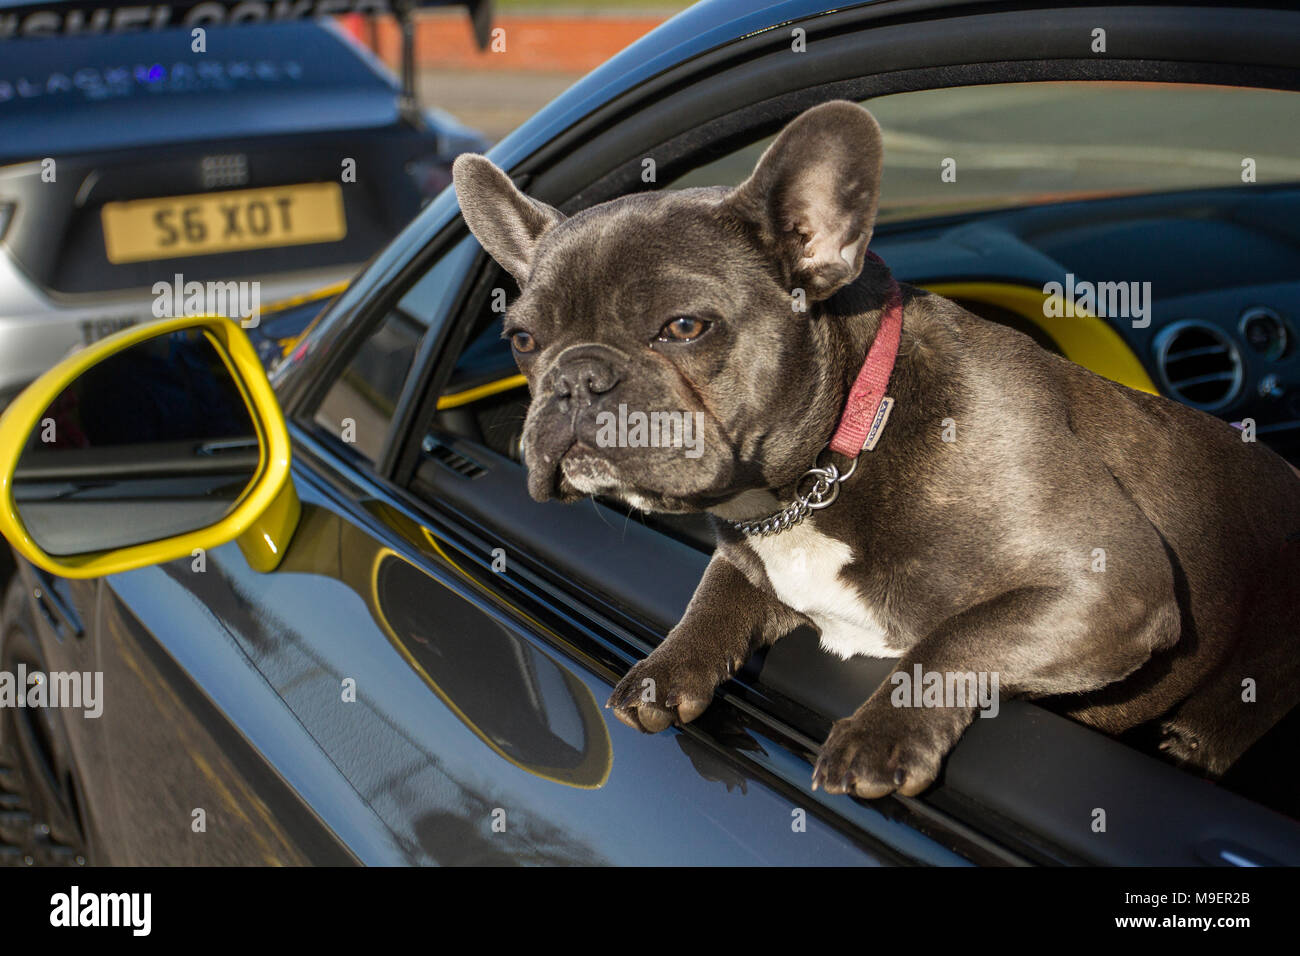 Southport, Merseyside, UK 25th March 2018.  UK Weather. Bright sunshine for Nort-West Supercar event as hundreds of cars and tourists arrive in the coastal resort on a warm spring day. Vogue a French Bulldog, also known as the Frenchie, a small breed of domestic dog enjoying the journey. Cars are bumper to bumper on the seafront esplanade as classic & vintage car enthusiasts take advantage of warm weather for a motoring day out. Credit: MediaWorldImages/Alamy Live News. - Stock Image